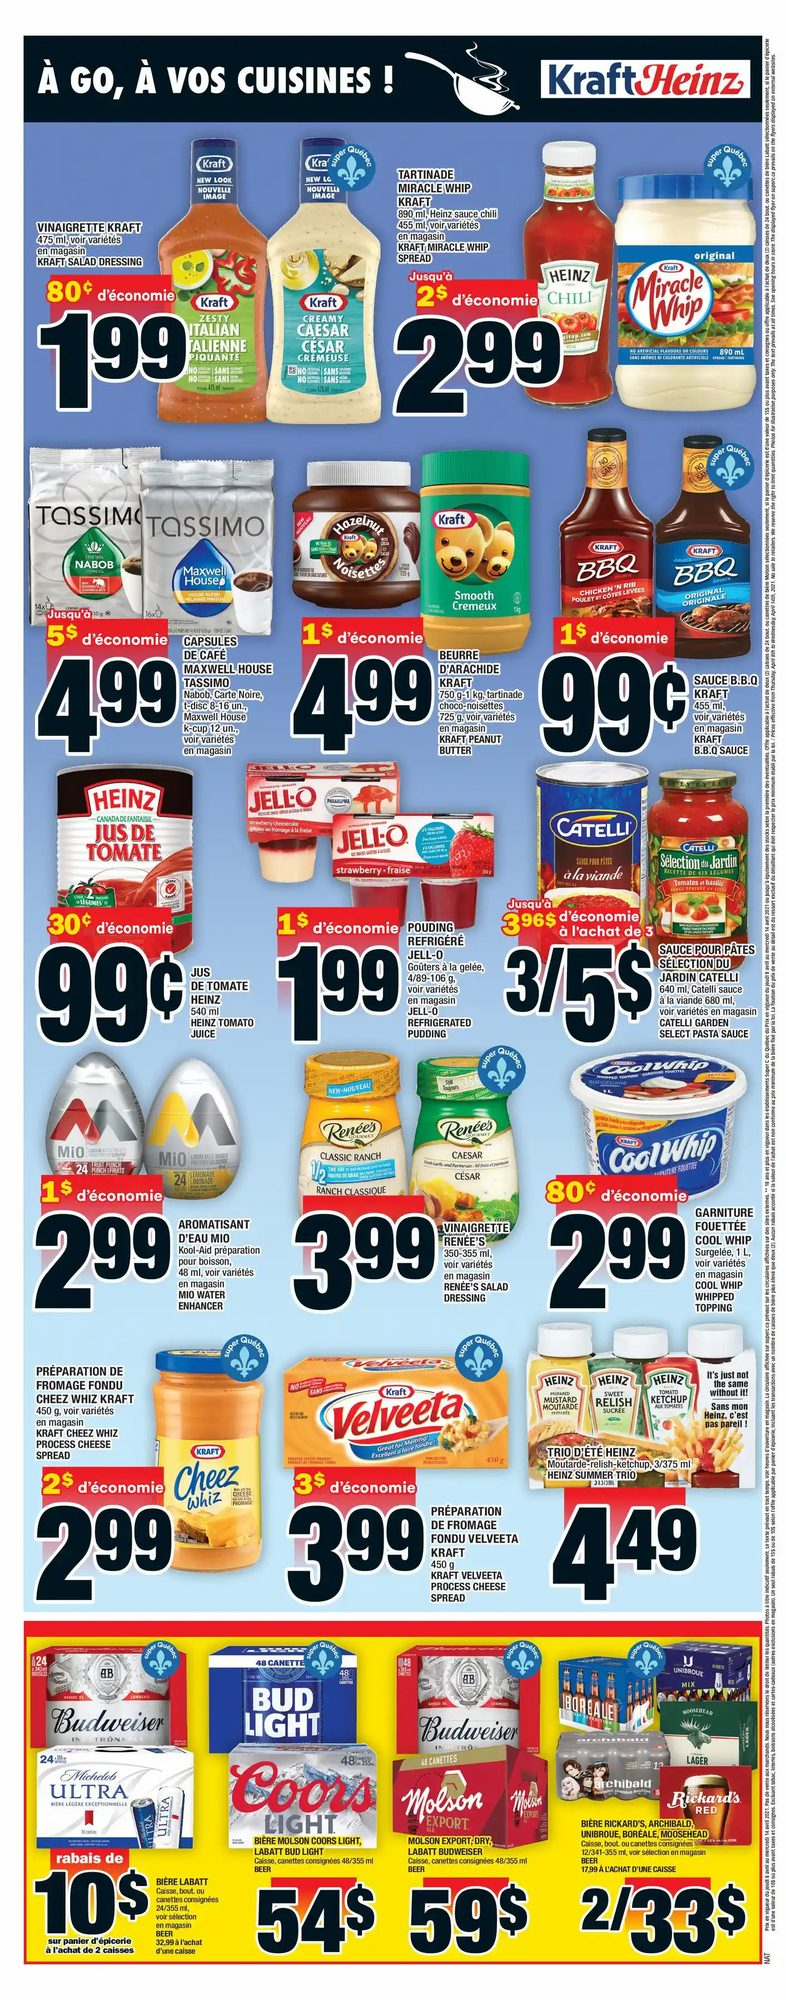 Super C - Weekly Flyer Specials - Page 4